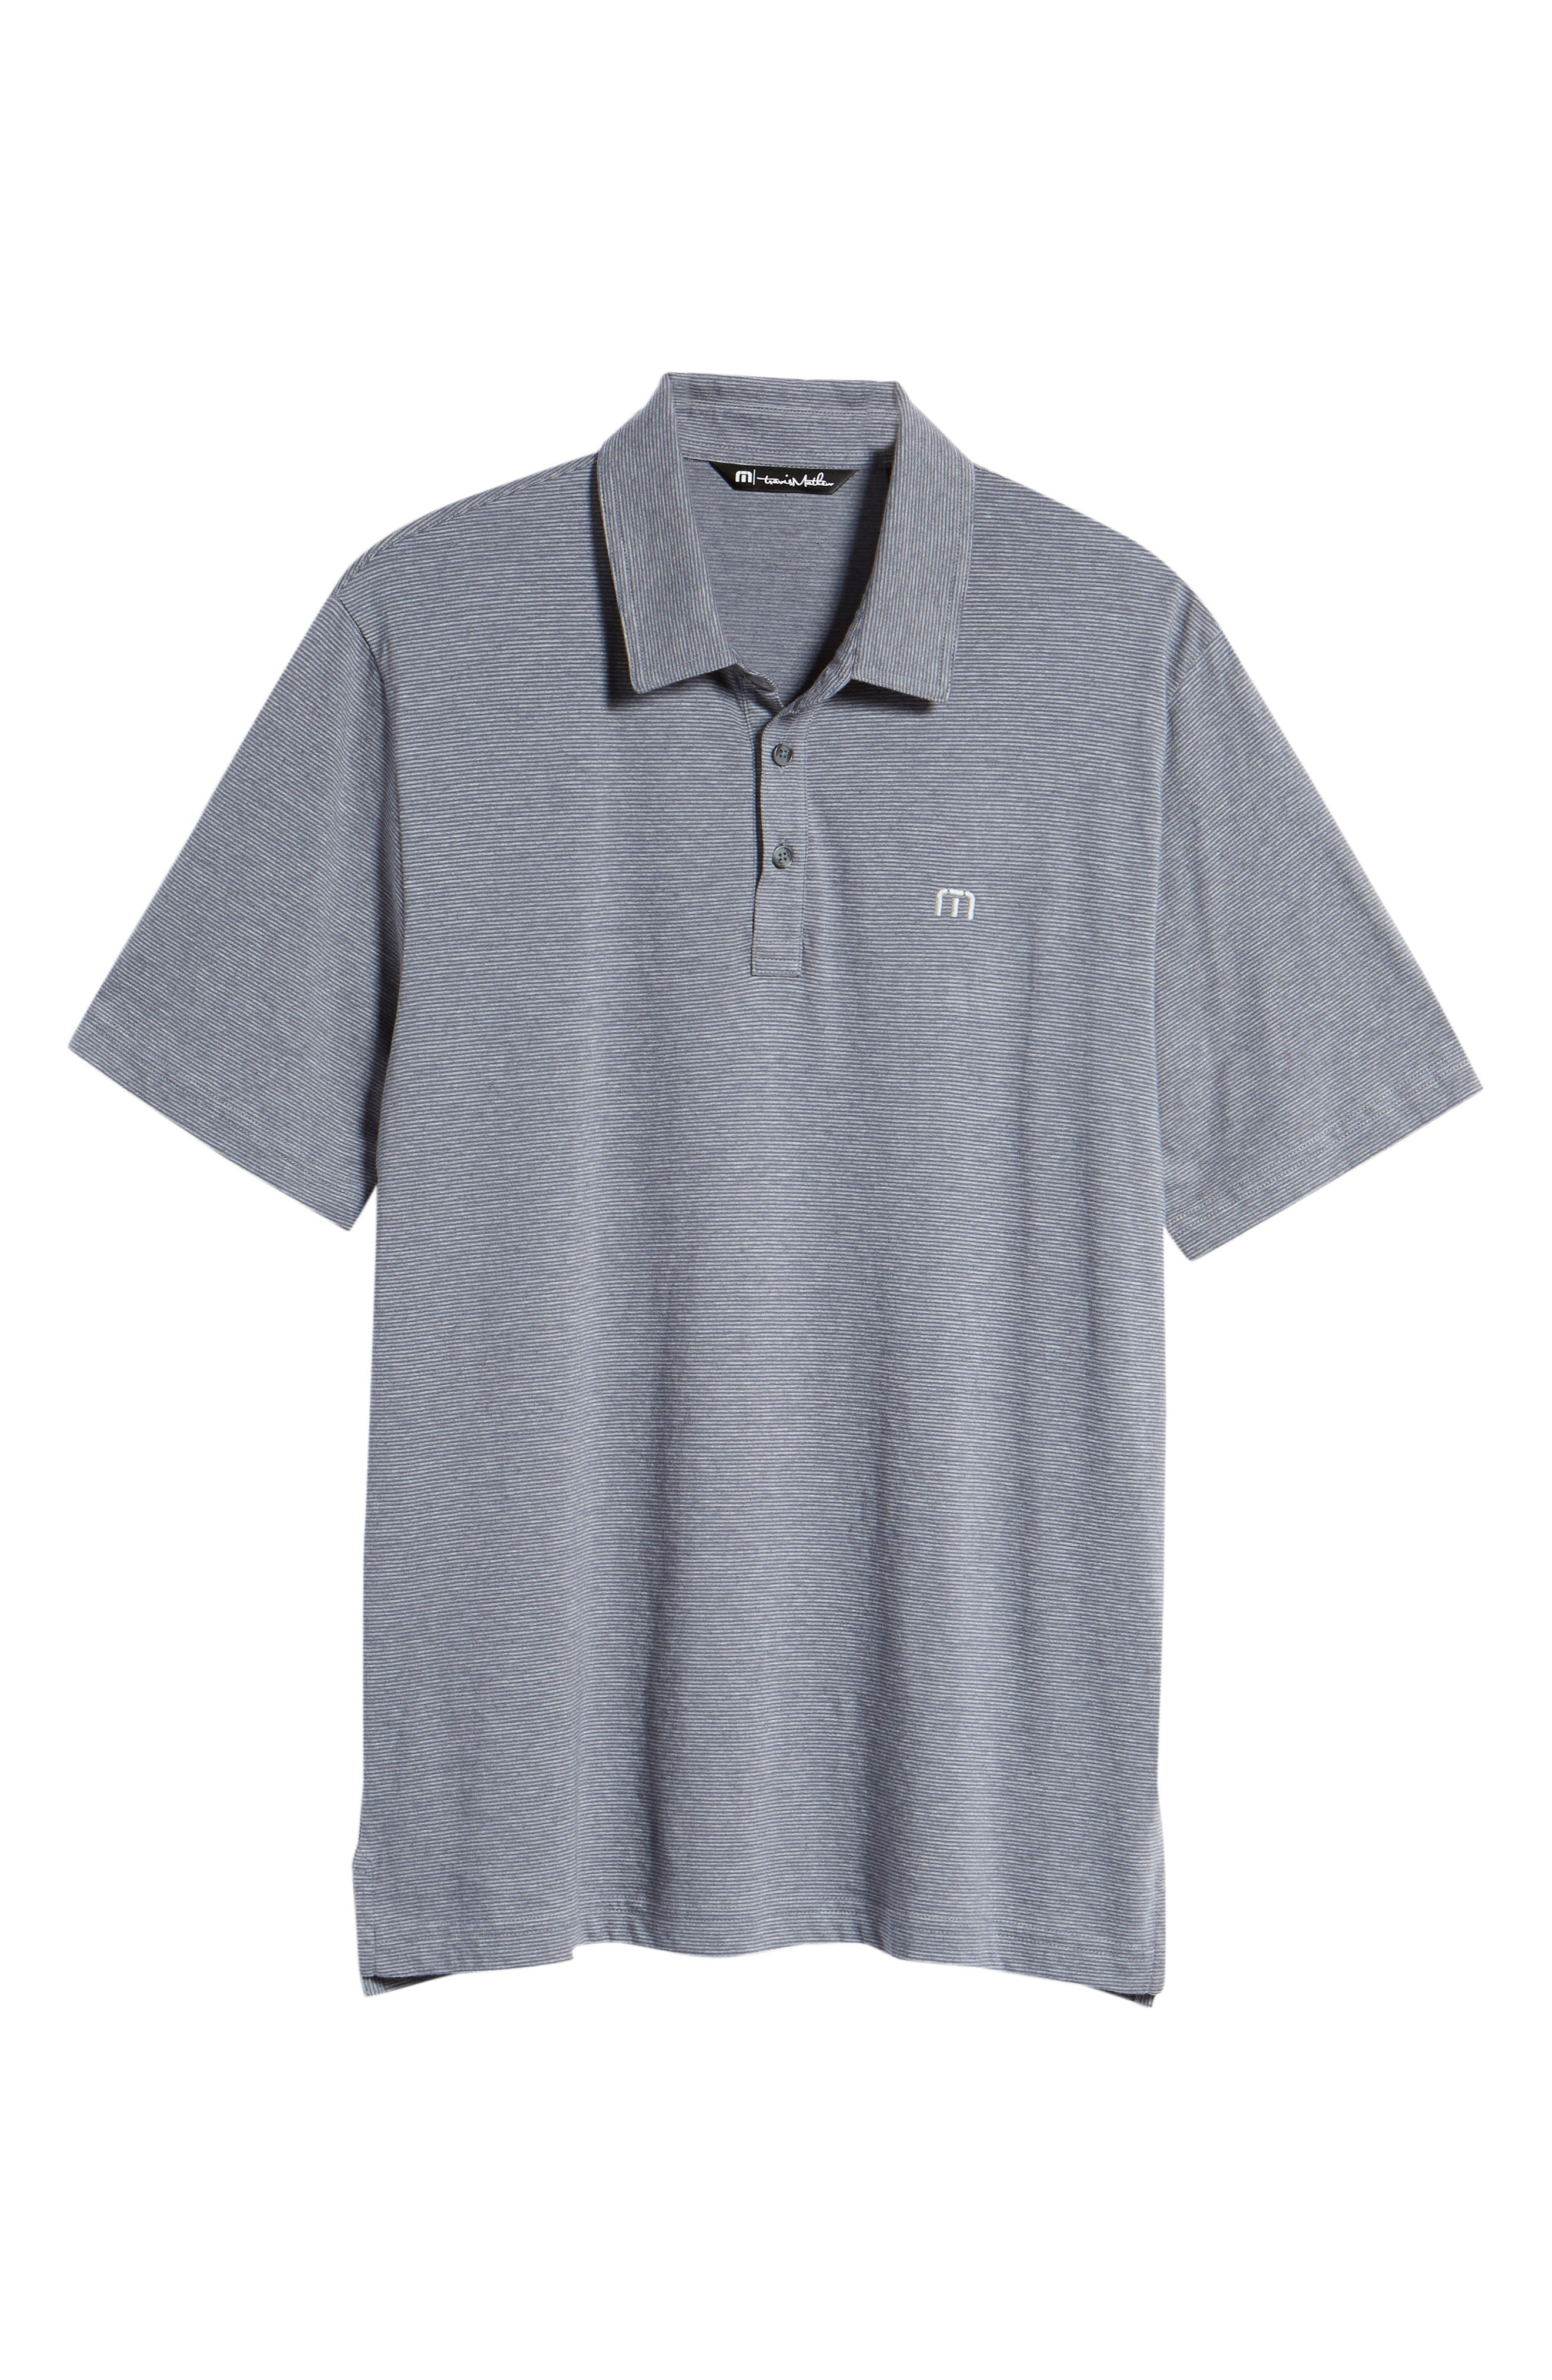 JQ Regular Fit Stripe Polo,                             Alternate thumbnail 6, color,                             Heather Grisaille